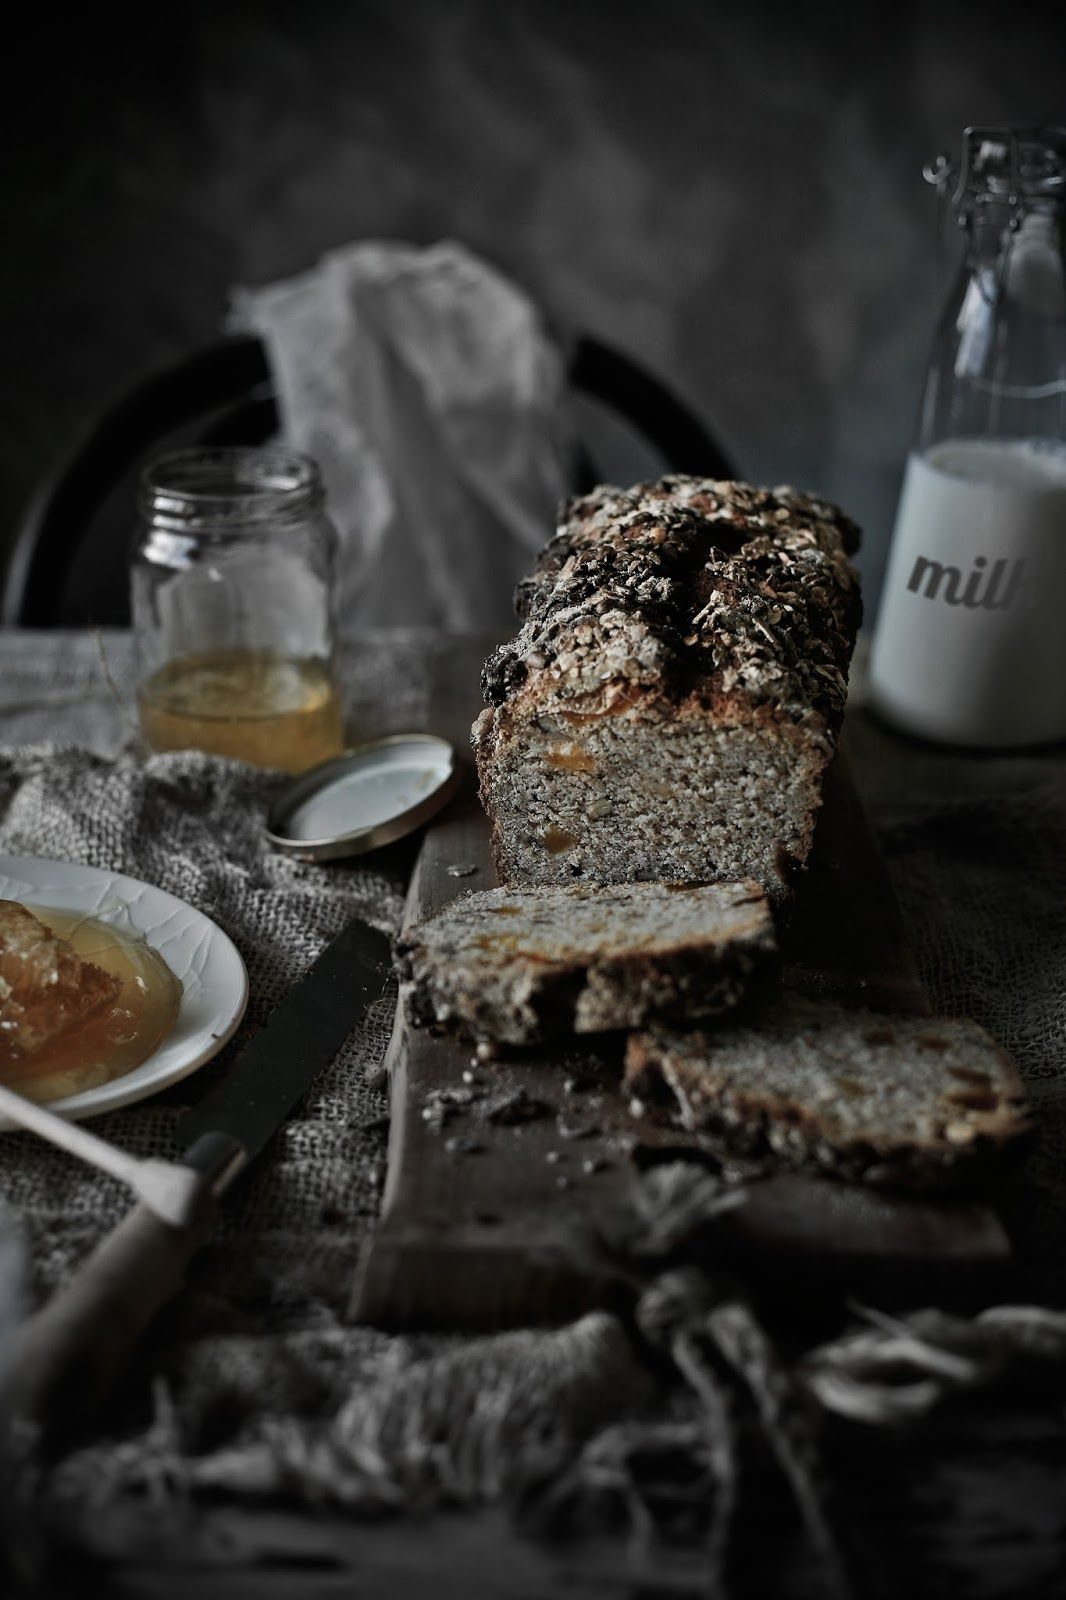 Sorghum, whole wheat bread with cottage cheese, pecans and dried apricots - Pratos e Travessas | Food, photography and stories